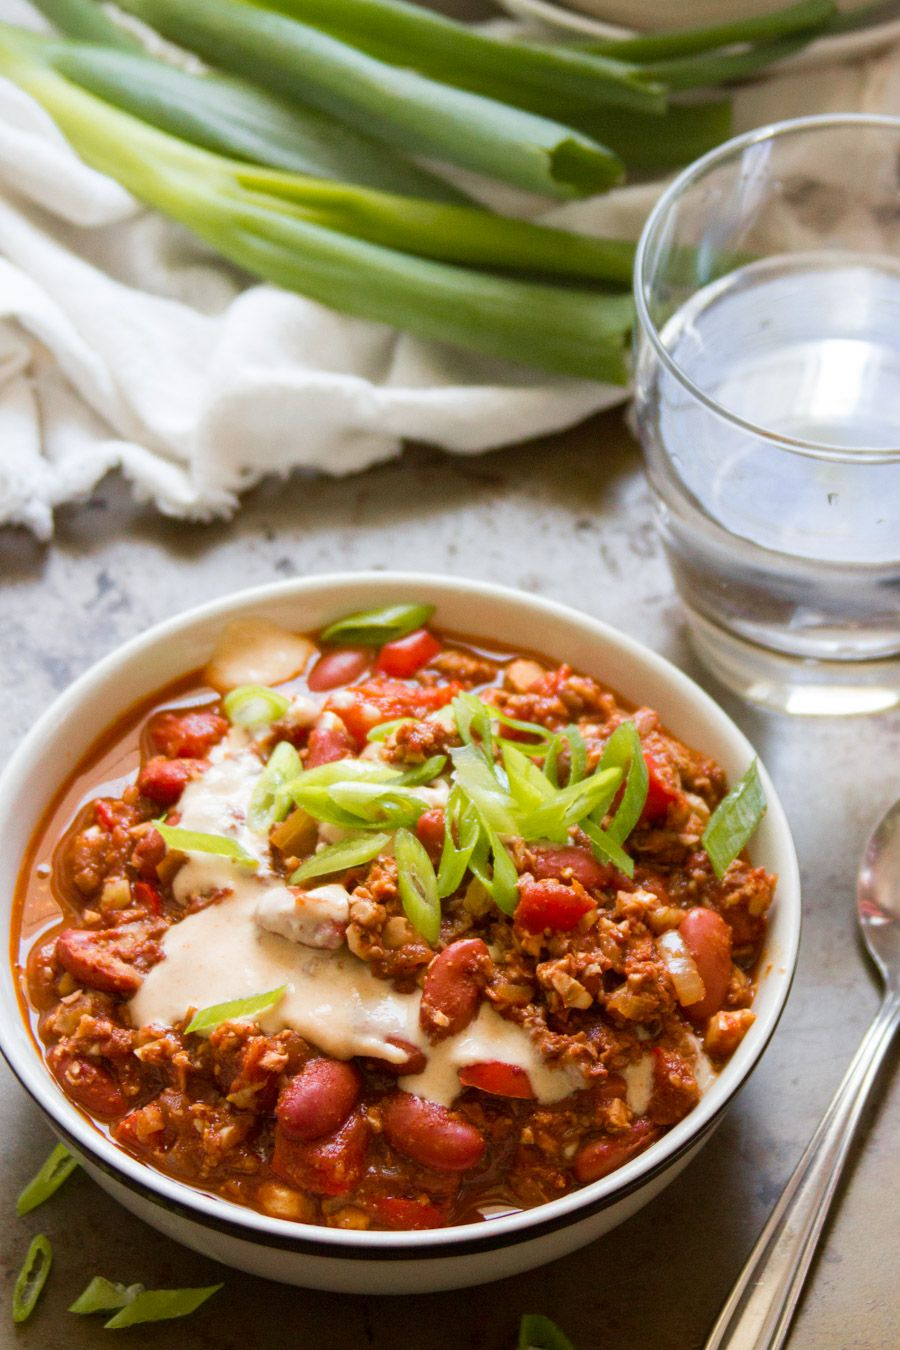 Vegan Chili Con Carne Meatless Chili Healthy Vegan Dinner Recipes Healthy Vegan Dinner